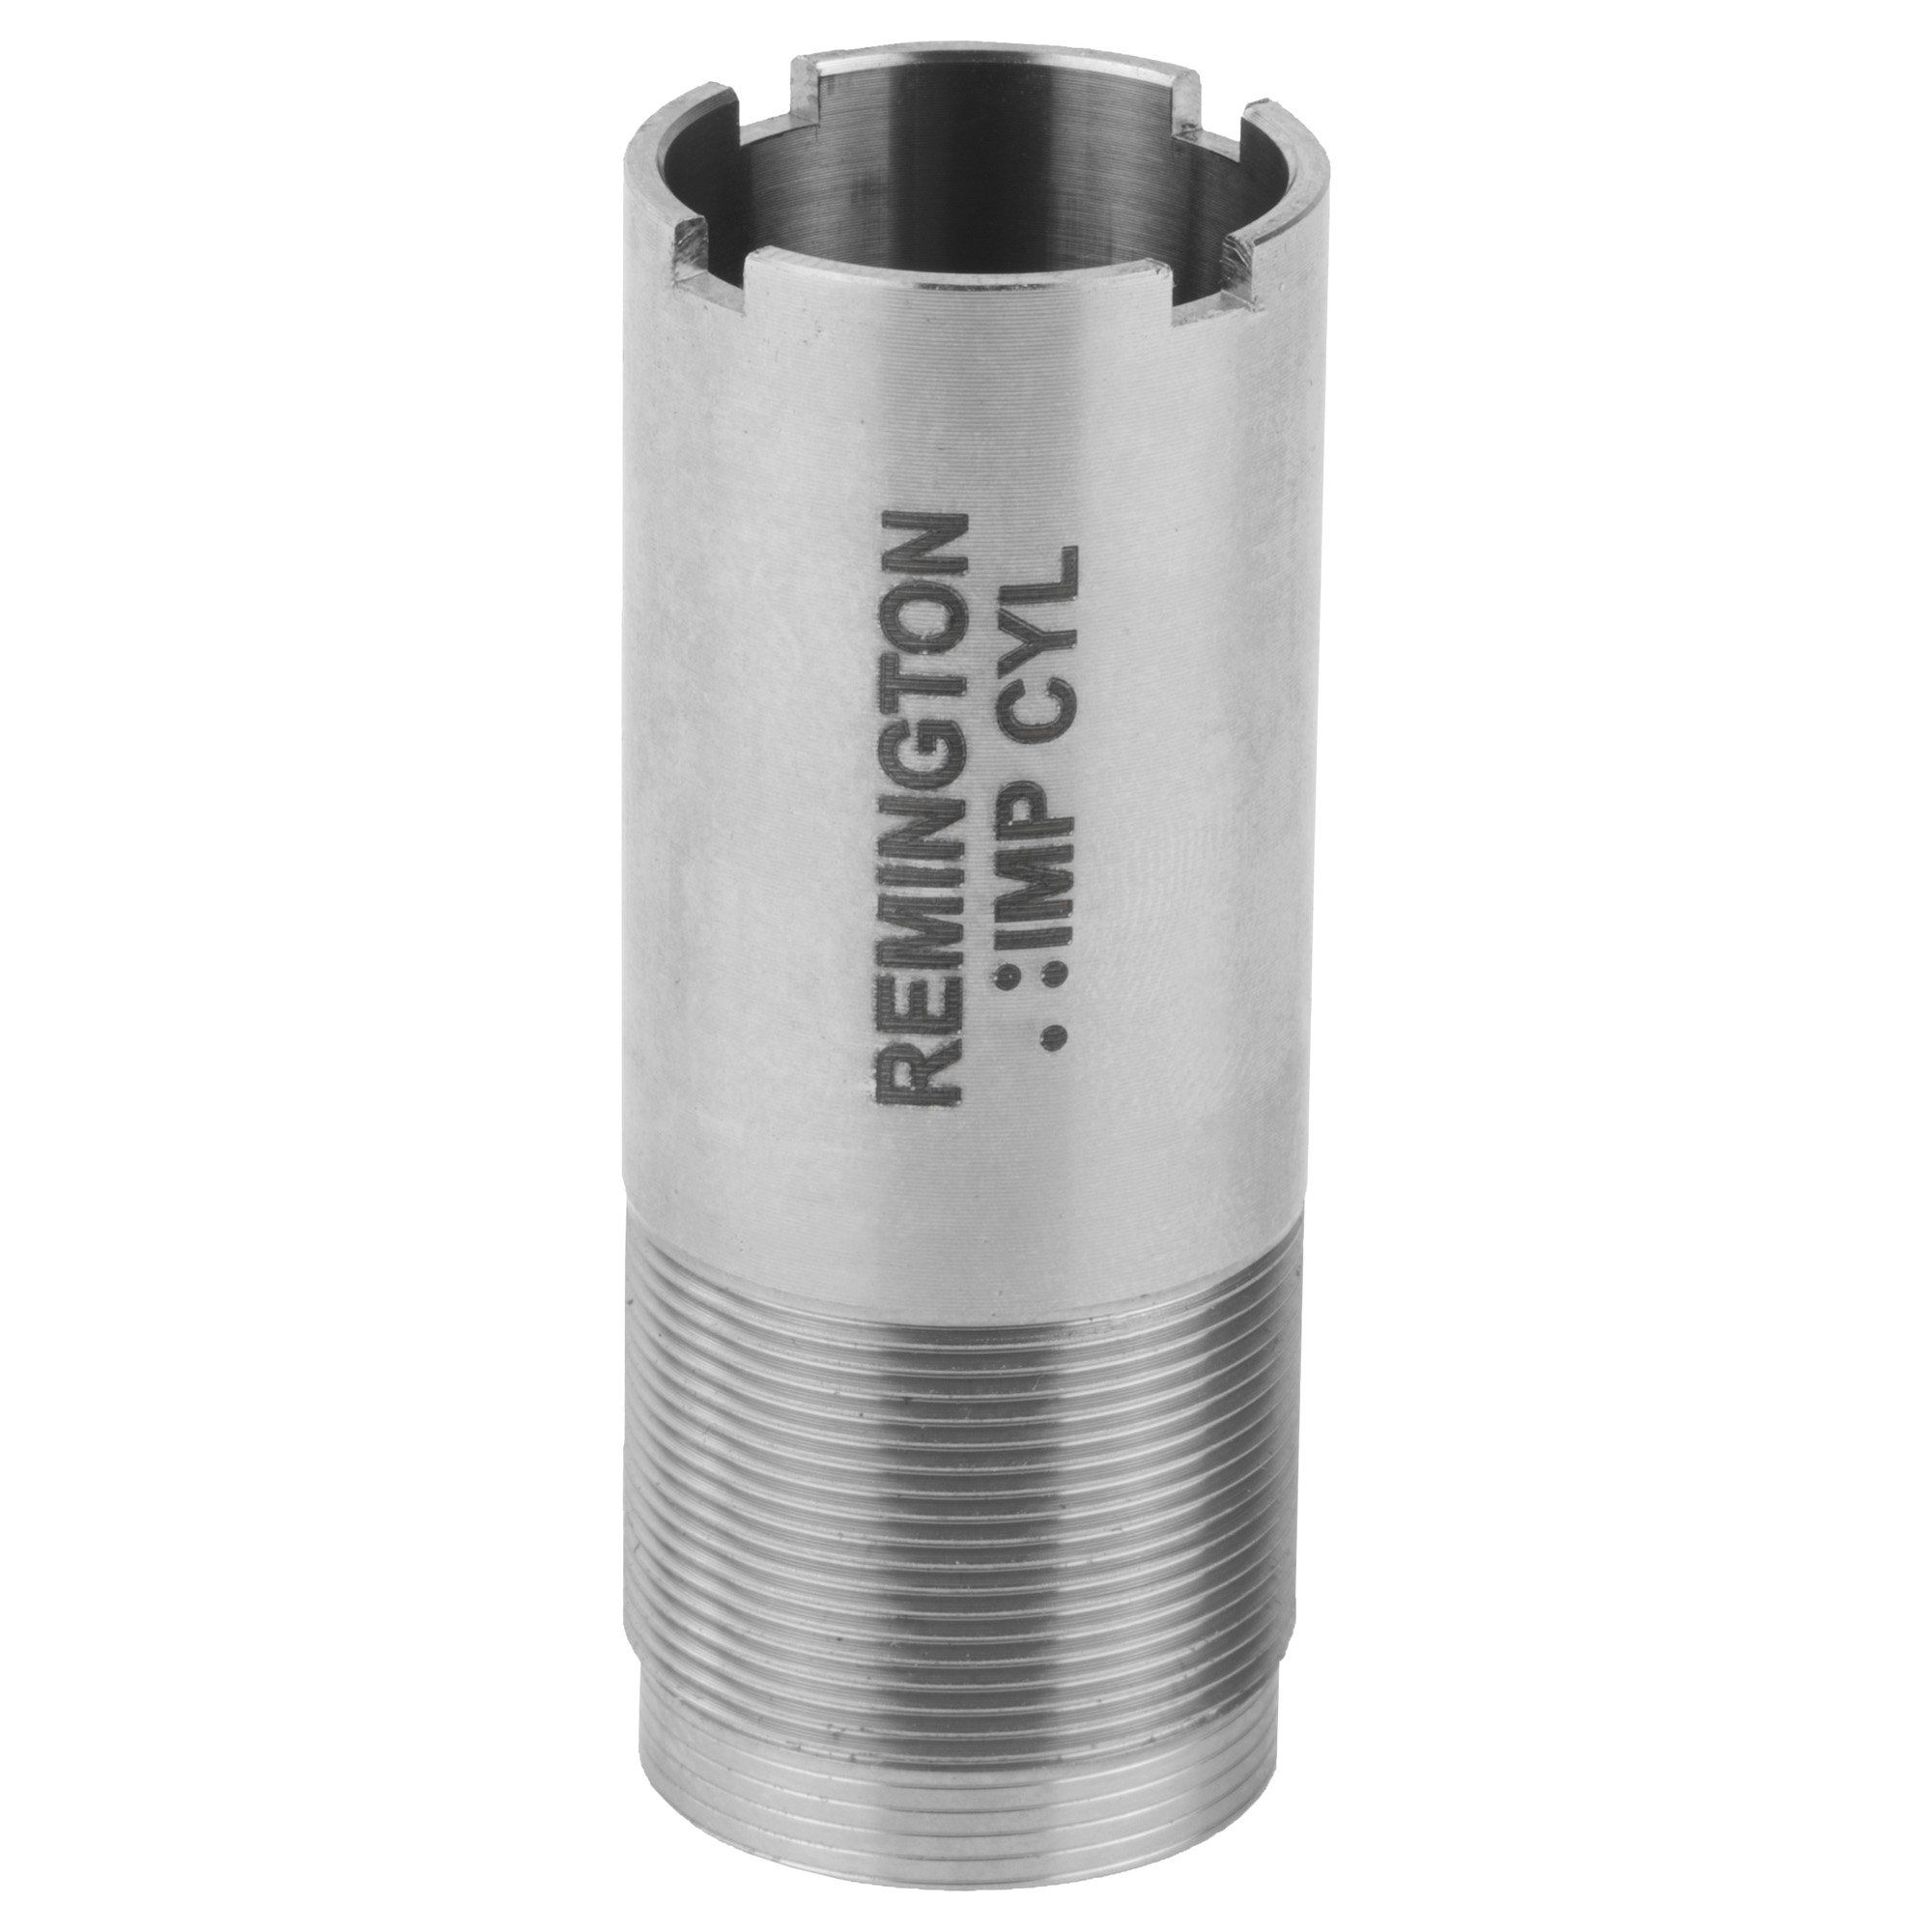 """Rem(TM) Choke 12 Ga. Improved Cylinder Flush"""" Steel or Lead. Remington's factory Rem Chokes are a system of interchangeable choke tubes and extended chokes that allow you to quickly and easily change the choke of your shotgun to match specific hunting conditions. Performance tuned for all Remington shotguns in field and target constrictions for optimal pattern performance."""